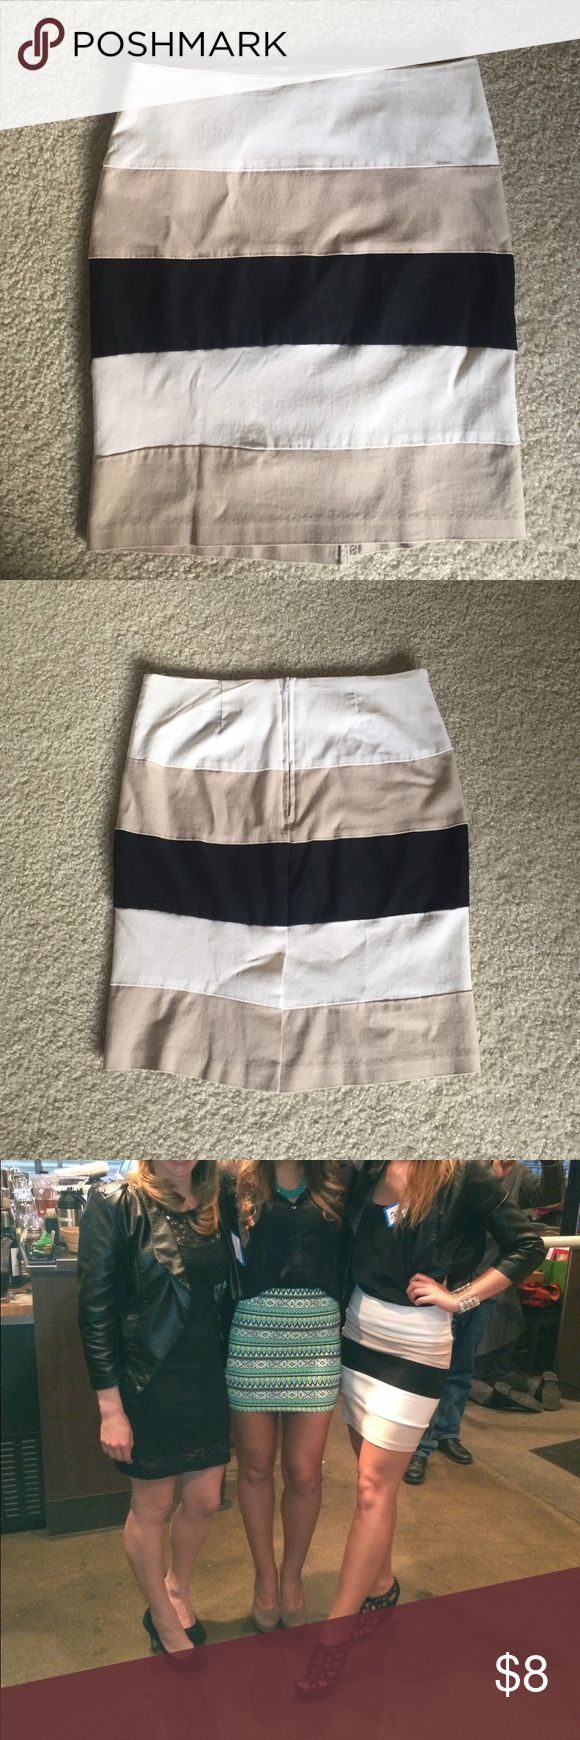 Striped (black, tan, white) Mini Skirt Striped black, tan/beige, and white mini skirt. Made of 74% rayon, 23% nylon, and 3% spandex. Has some stretch and very flattering. Rue21 Skirts Mini